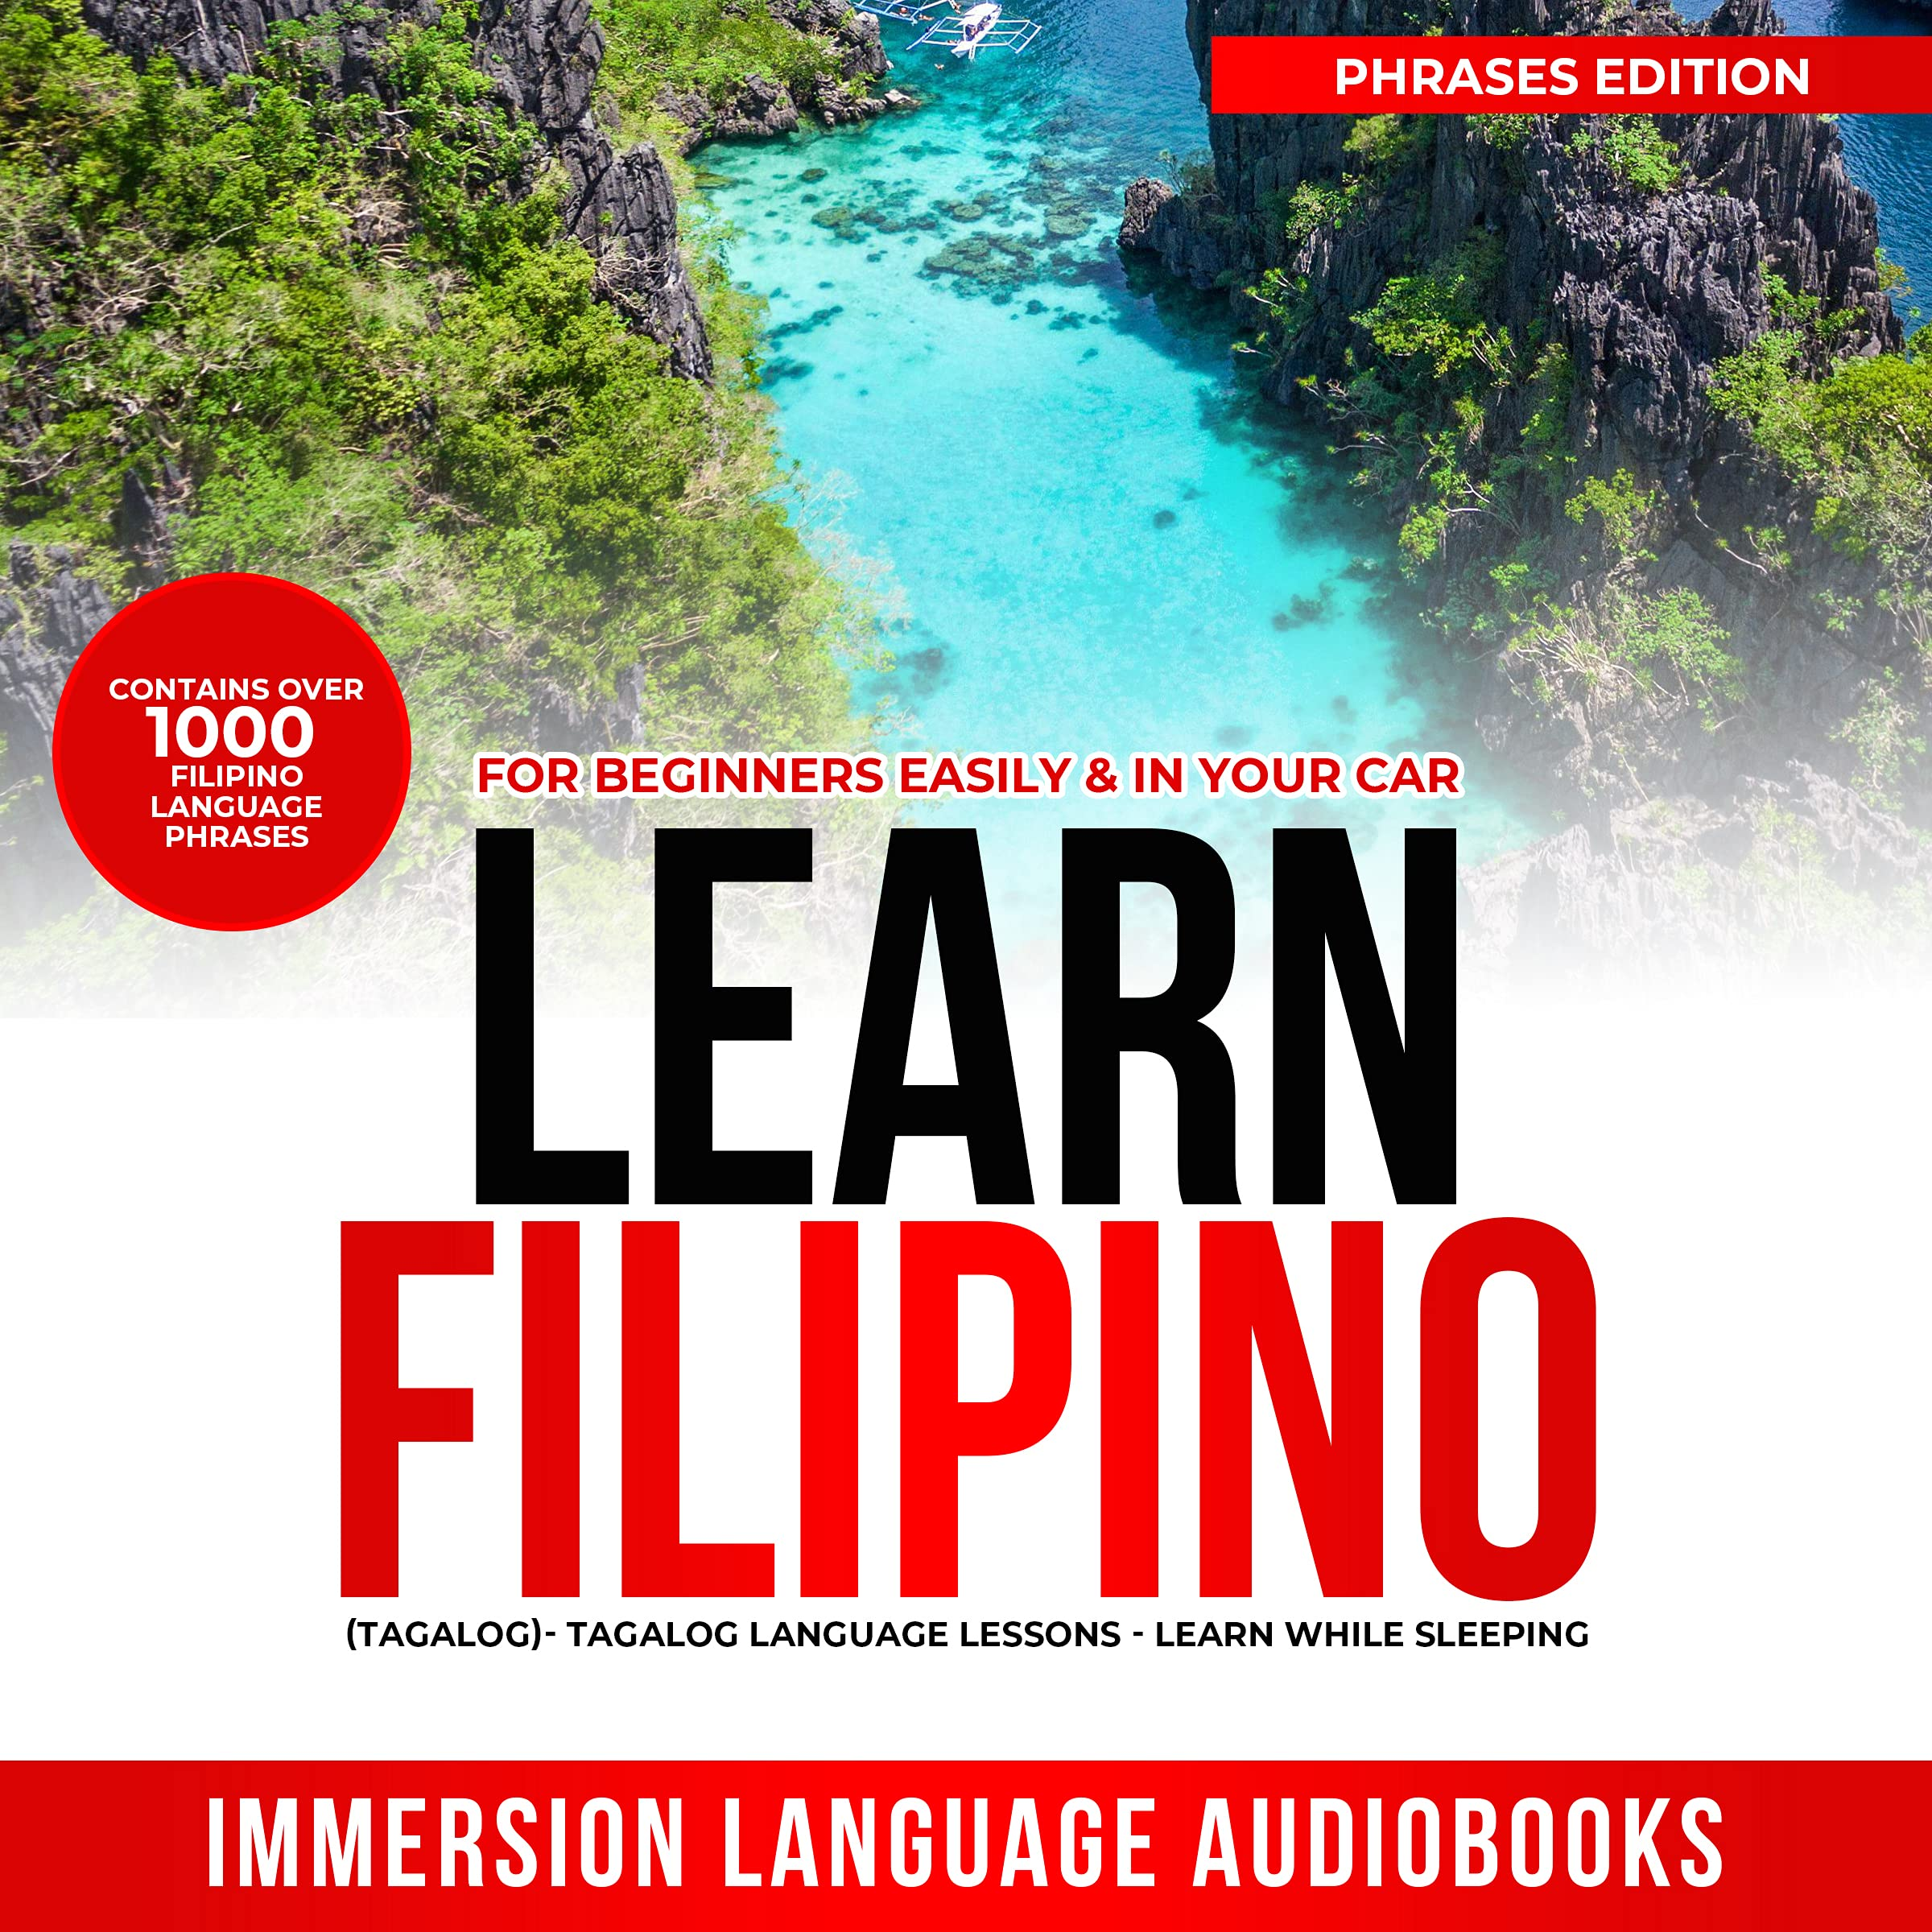 Learn Filipino ( Tagalog) For Beginners Easily & In Your Car! Phrases Edition! Contains Over 1000 Everyday Filipino Language Phrases: Tagalog Language Lessons - Learn While Sleeping